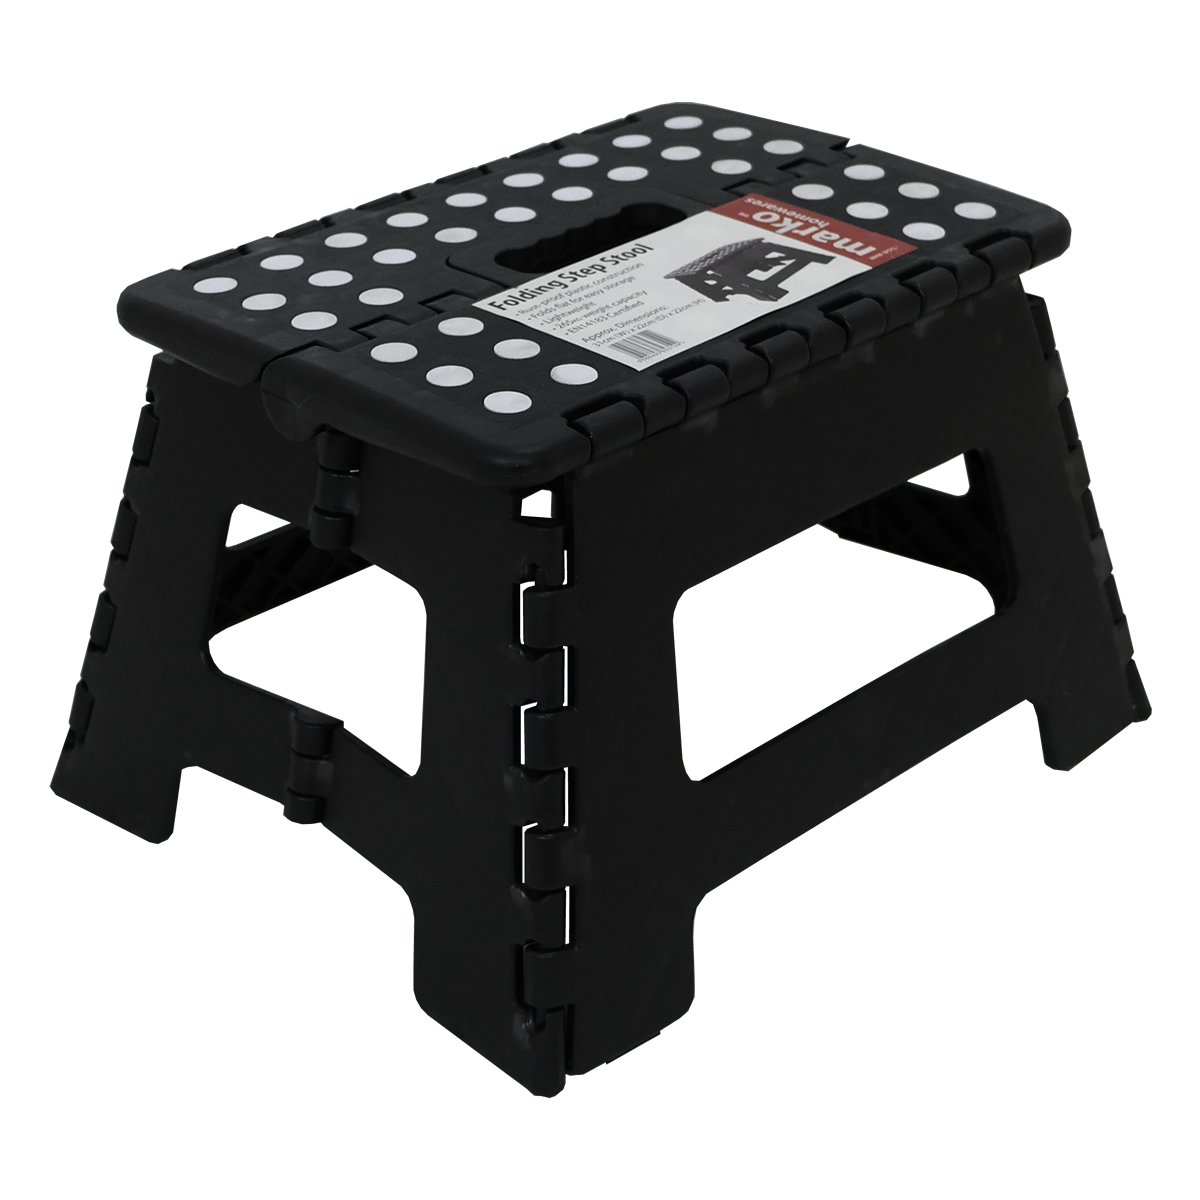 150KG Single Step Plastic Folding Step Up Stools Collapsible Foldaway Large Heavy Duty  sc 1 st  Amazon UK & ASAB Large Folding Step Stools 150KG: Amazon.co.uk: Kitchen u0026 Home islam-shia.org